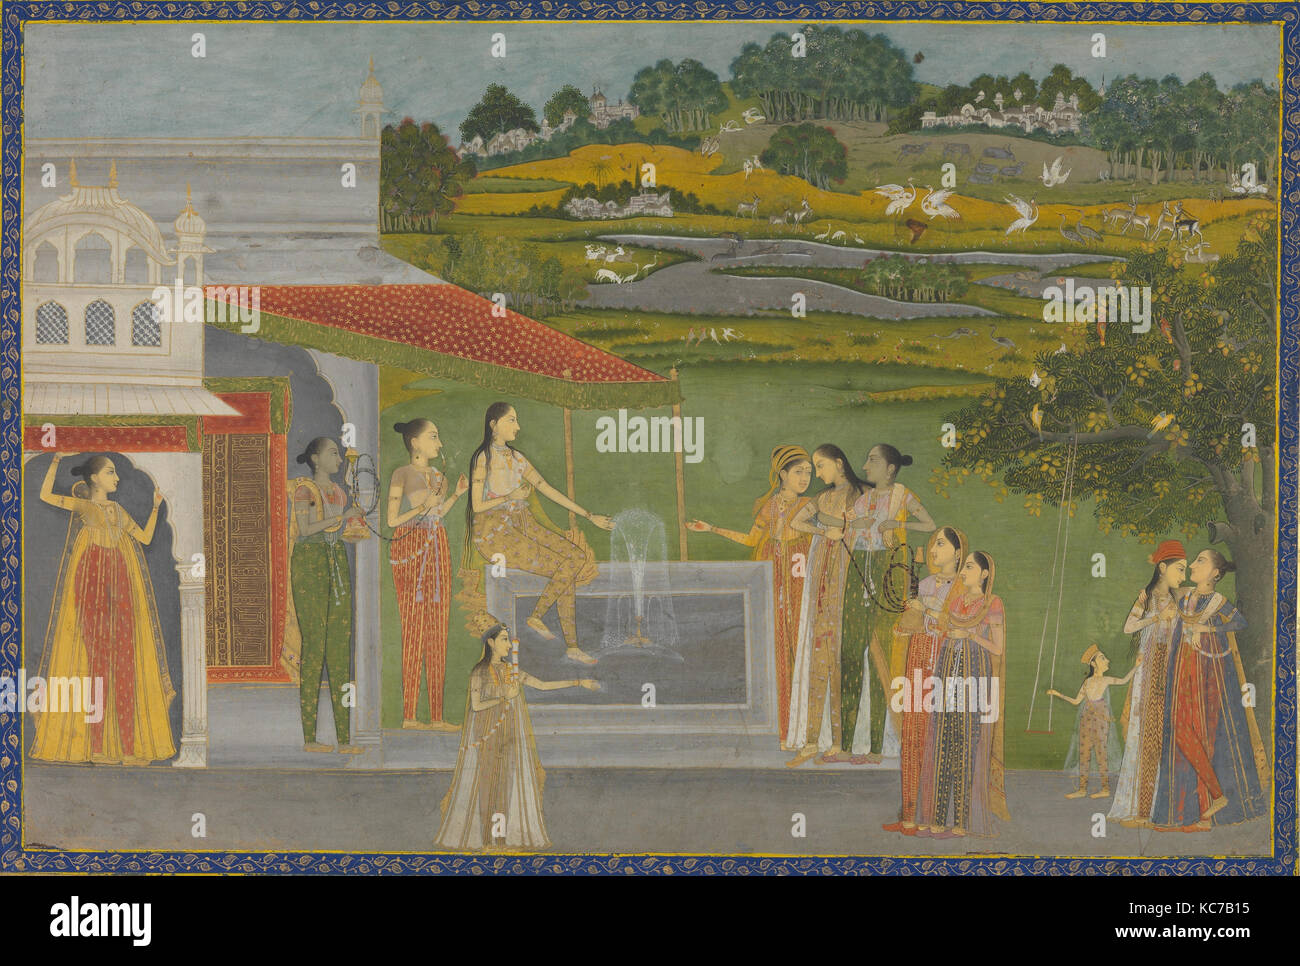 Princesses Gather at a Fountain, ca. 1770, Made in India, Farrukhabad, Opaque watercolor and gold on paper, 9 x - Stock Image